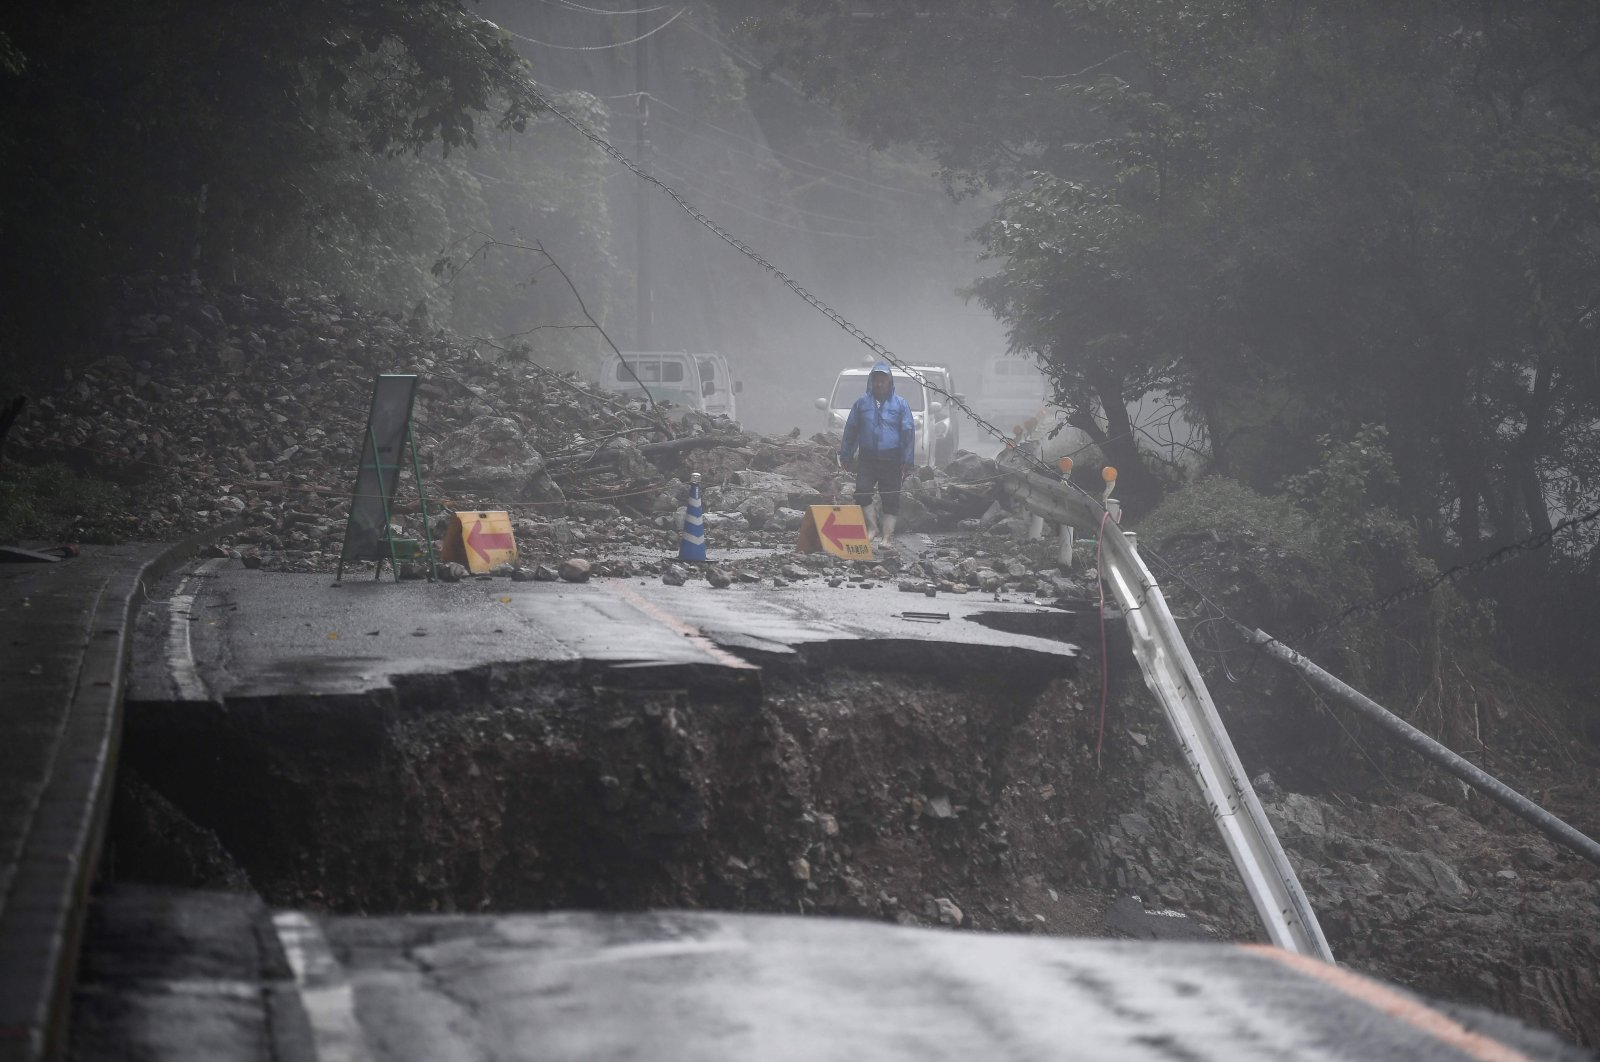 A road that collapsed due to heavy rain is seen in Kuma, Kumamoto prefecture, Japan, July 7, 2020. (AFP Photo)